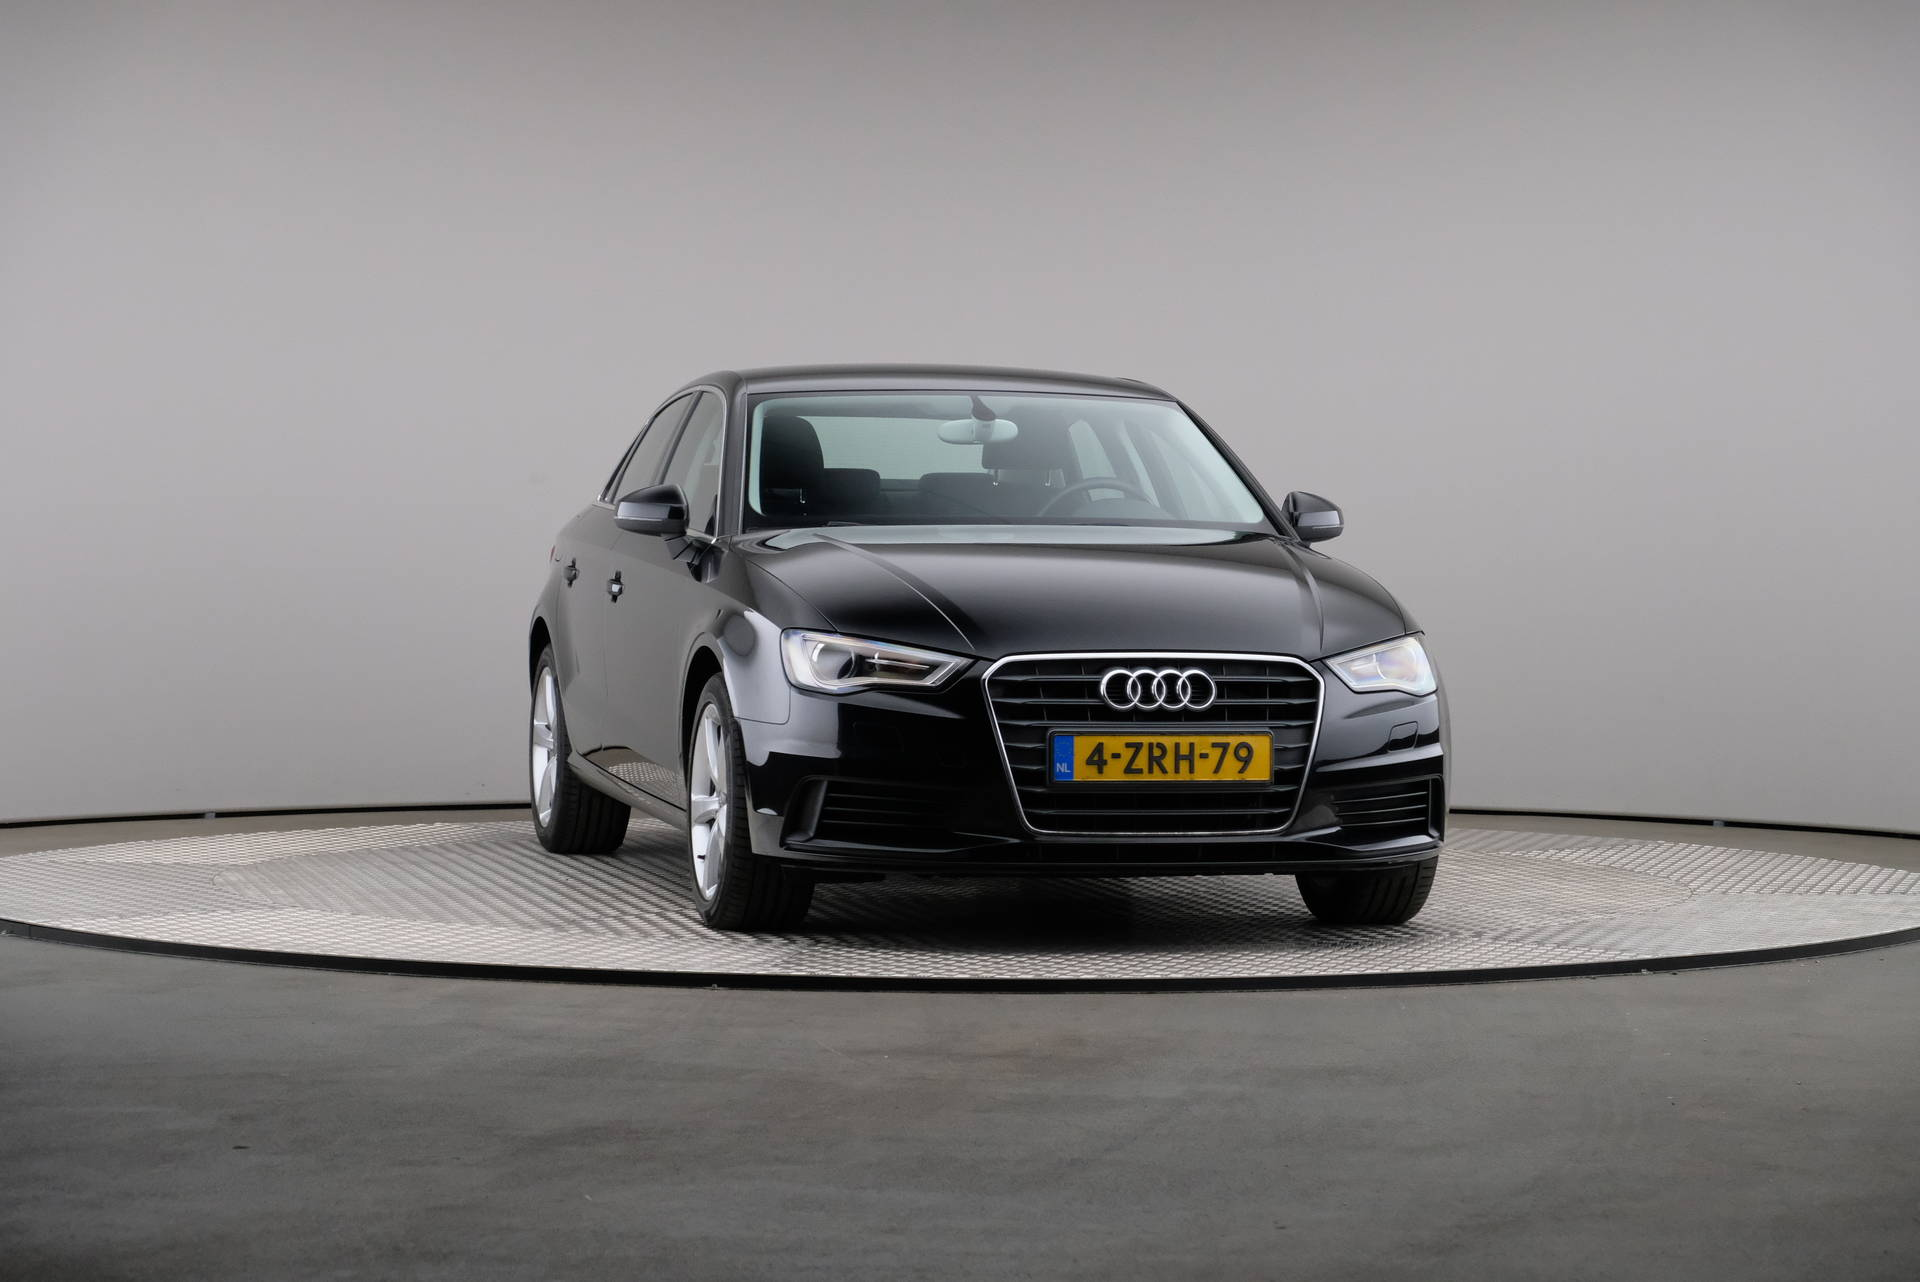 Audi A3 Limousine 1.6 TDI Attraction Pro Line Plus, Navigatie, Xenon, 360-image31